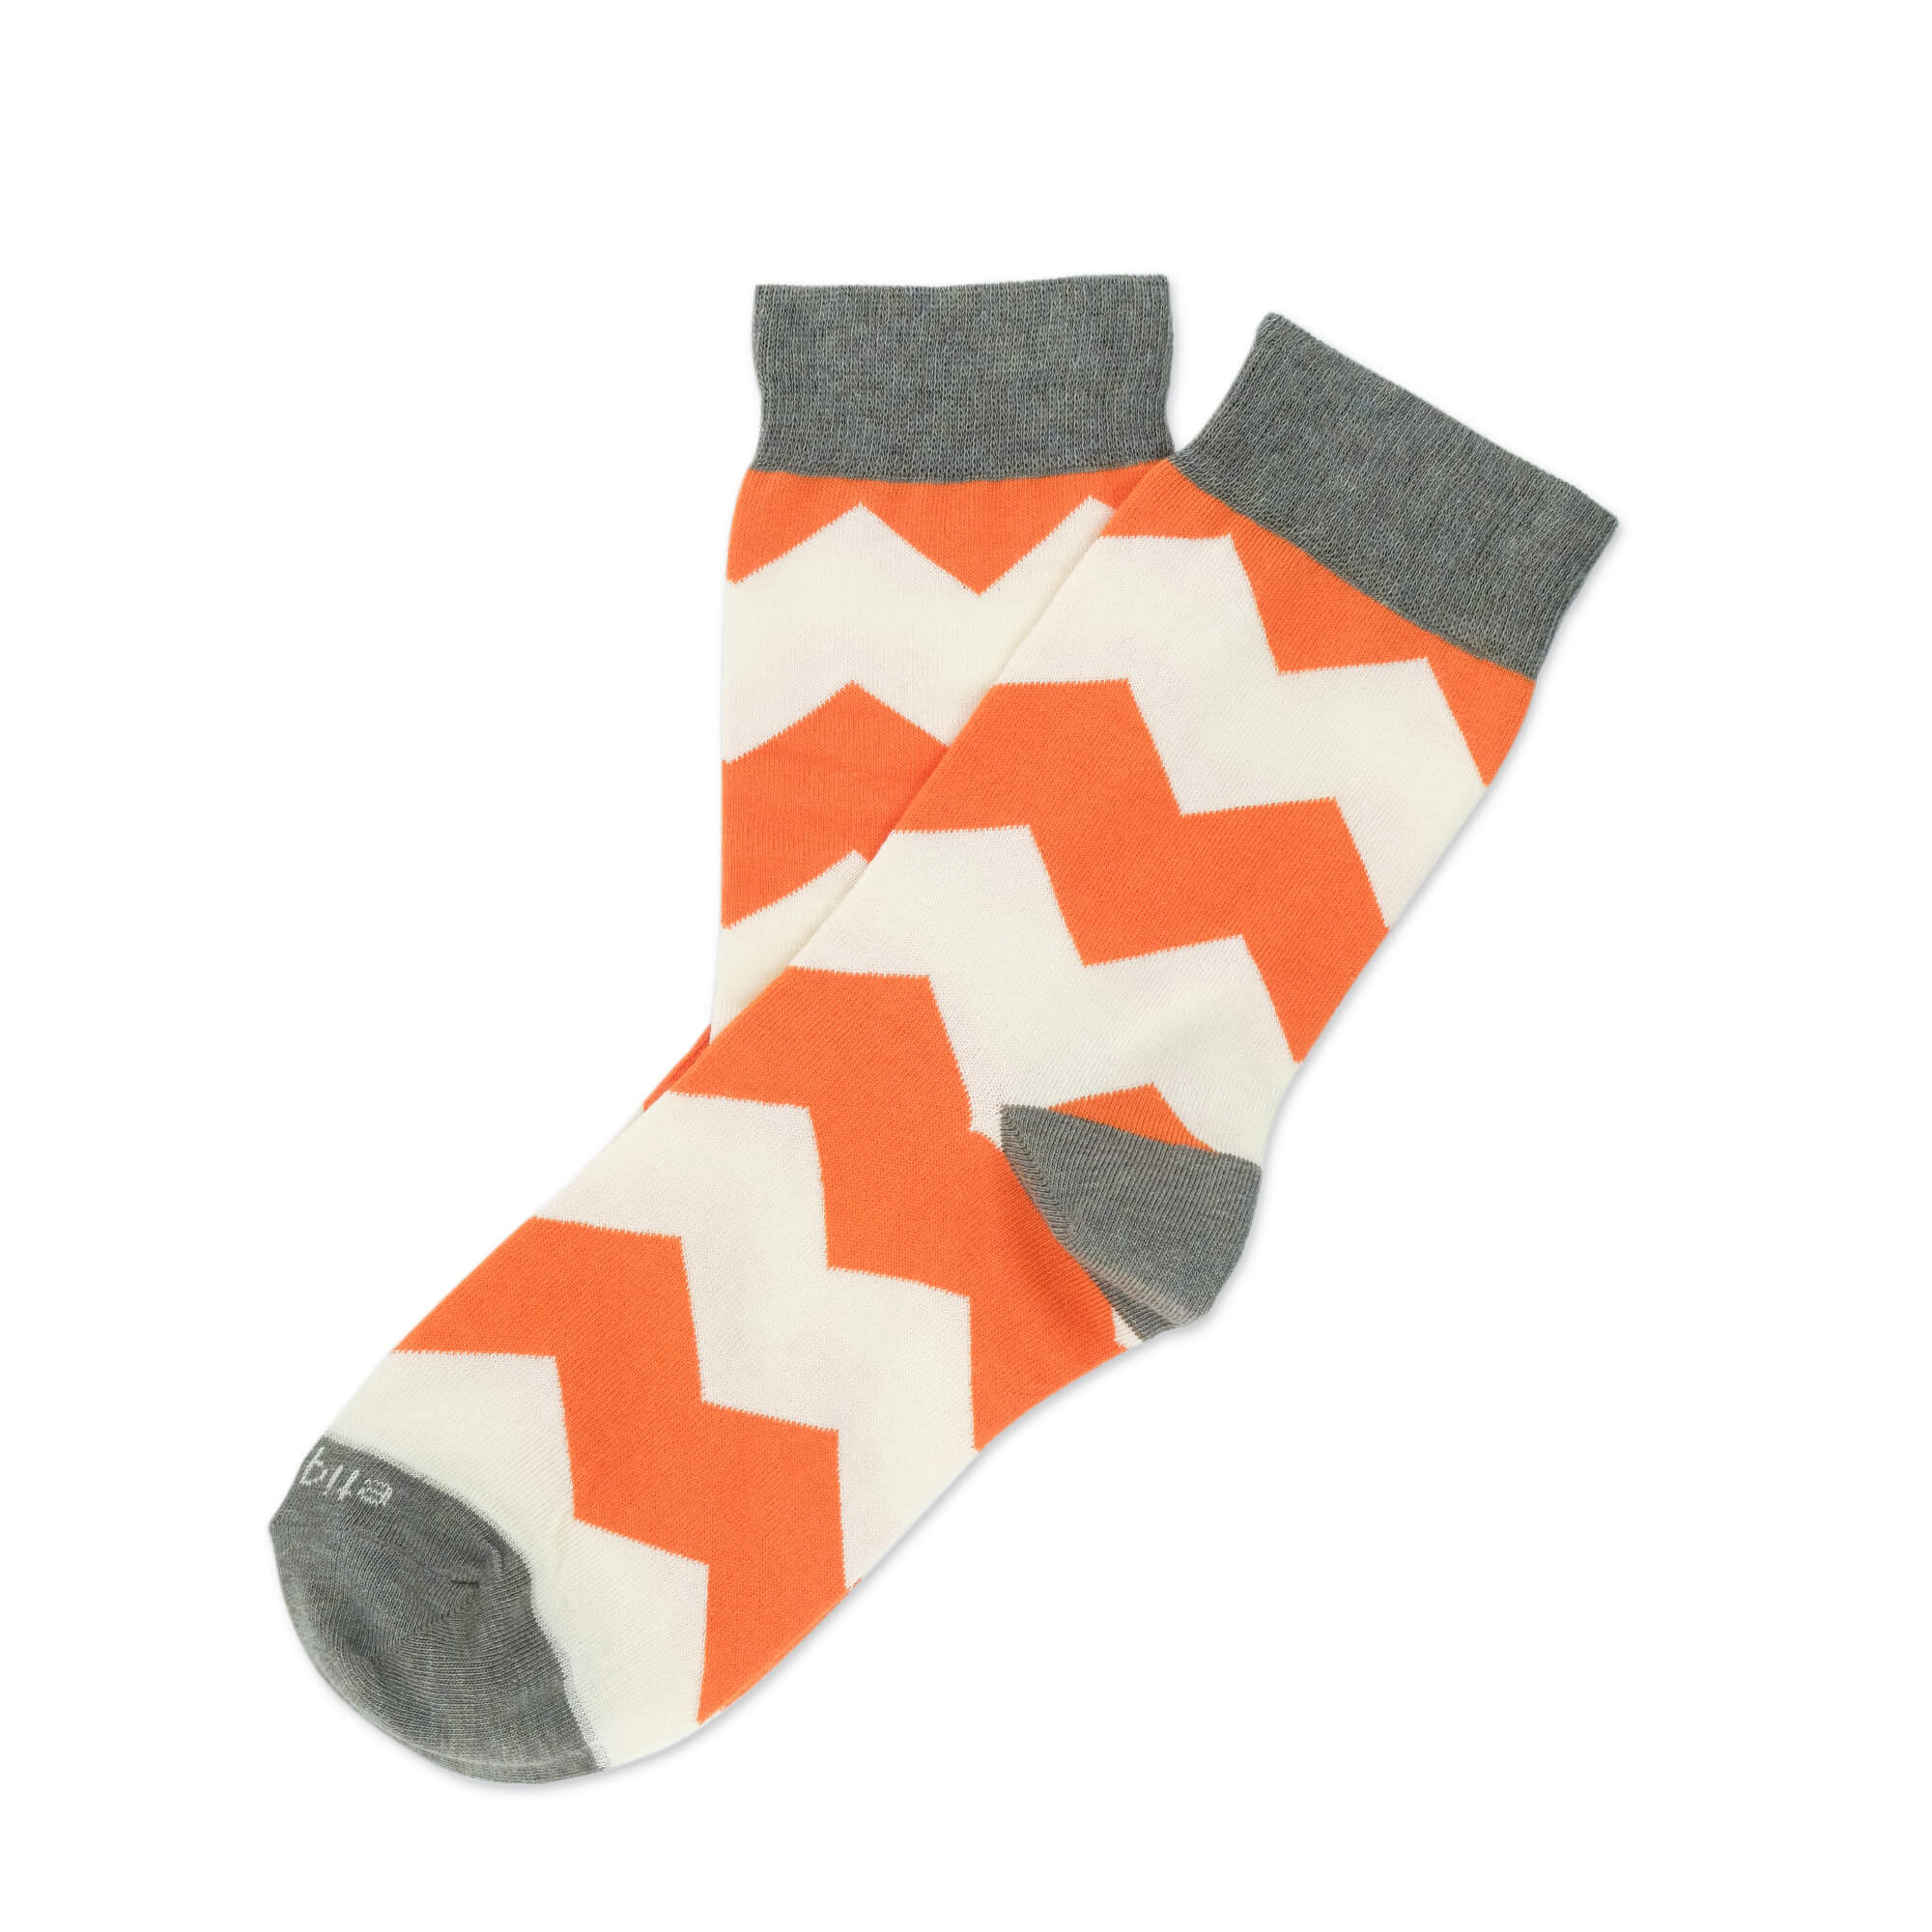 Womens Socks - Everest Stripes Women's Socks - Orange⎪Etiquette Clothiers